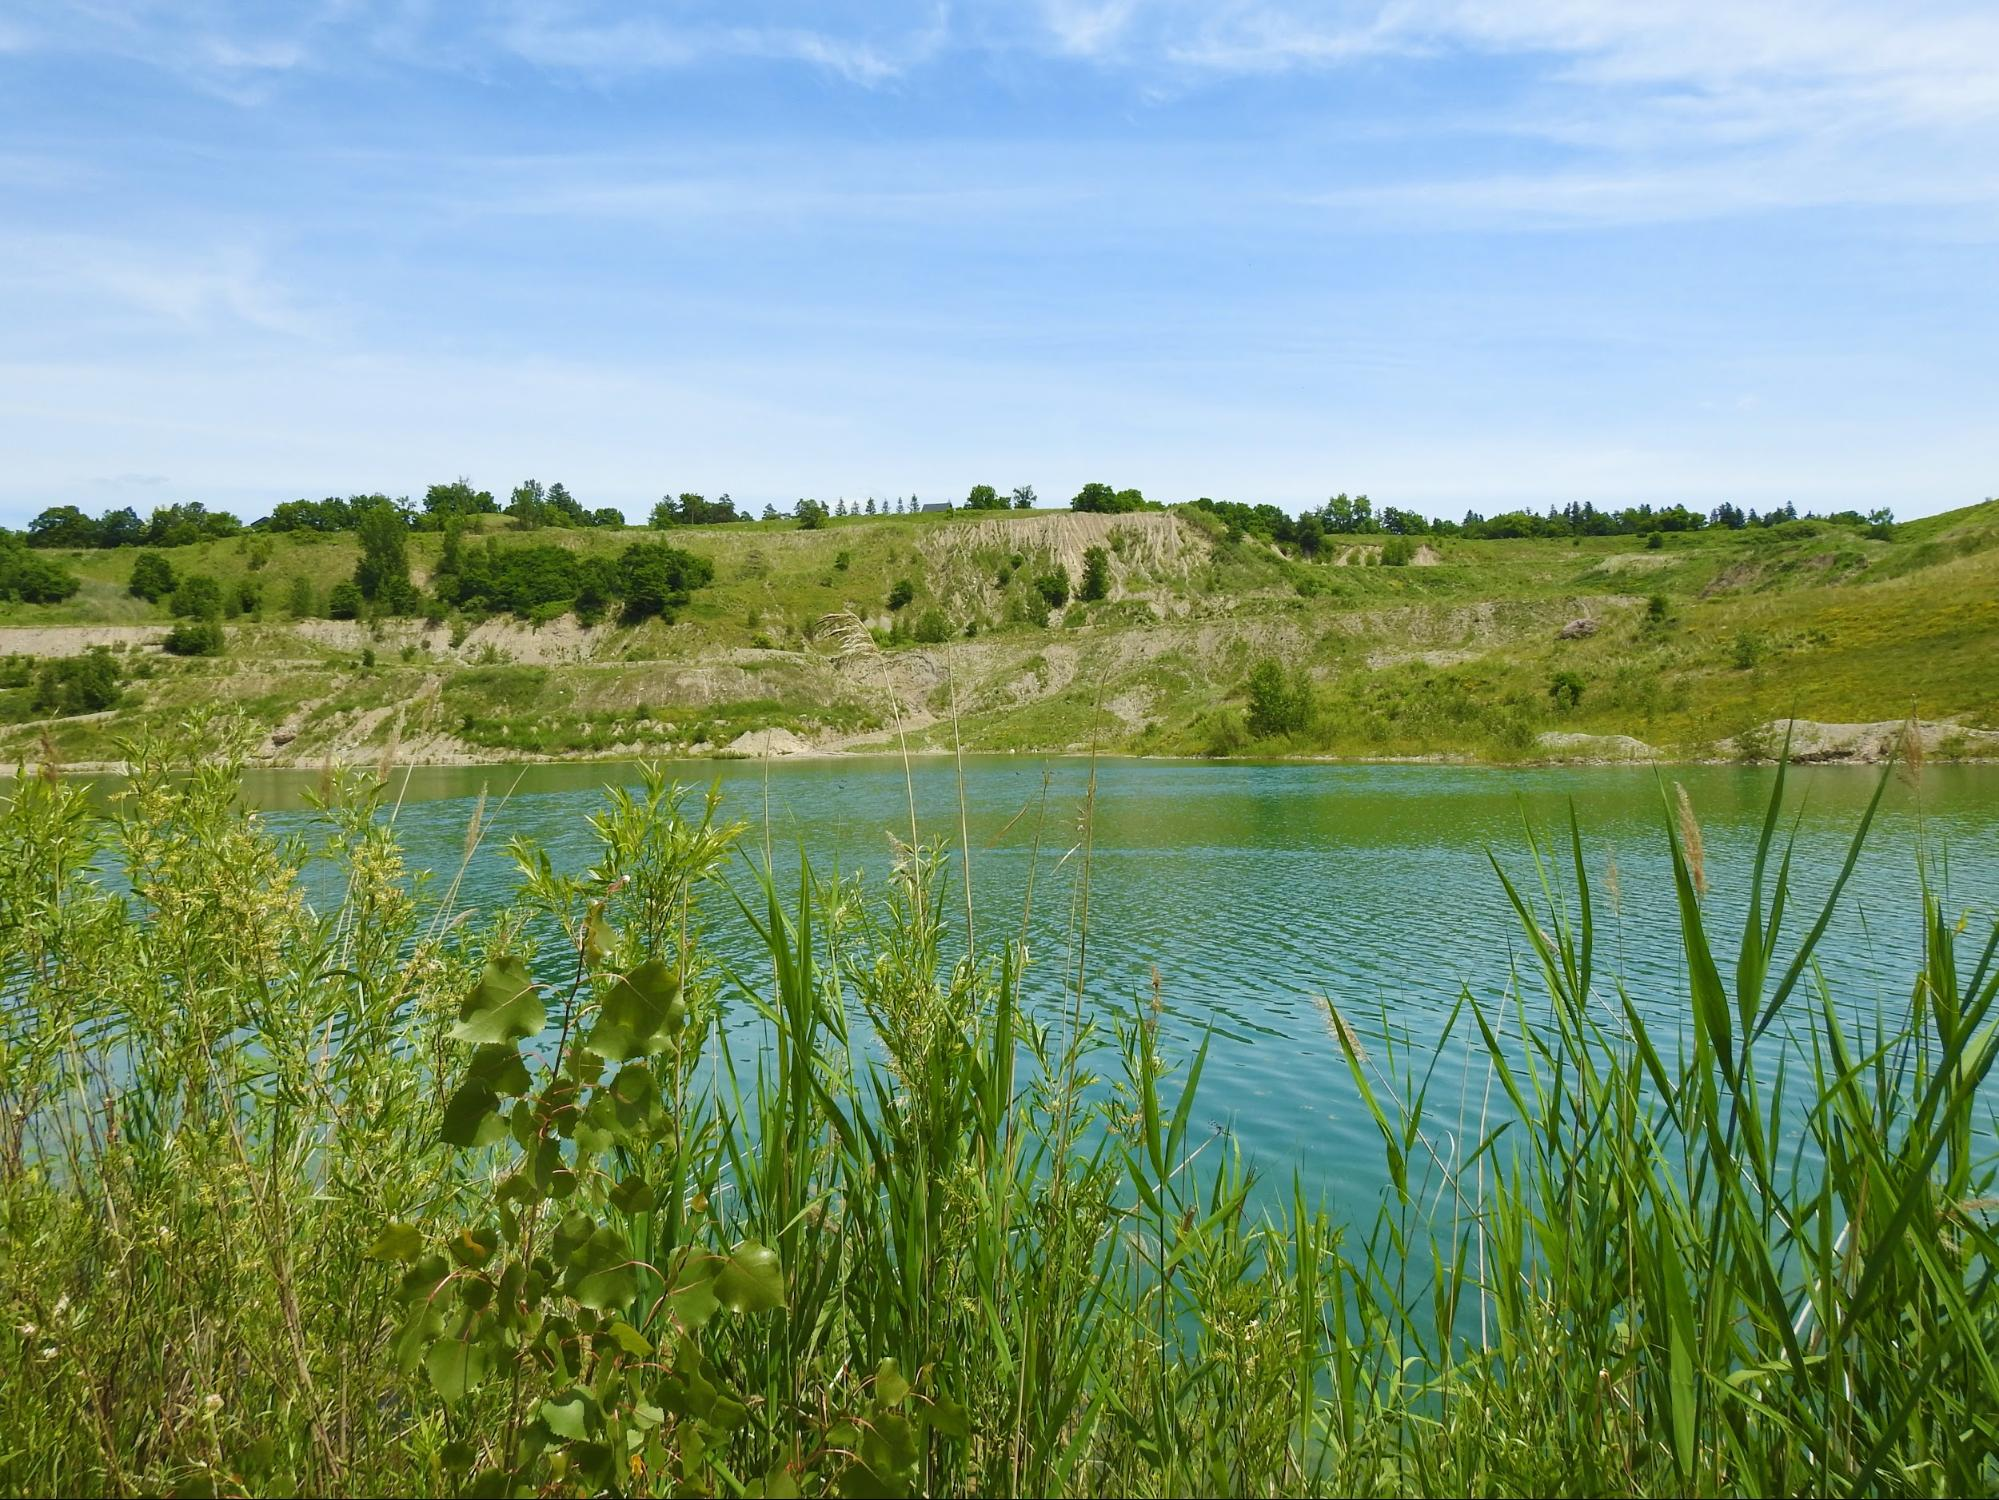 The limestone quarry at the Byron gravel pit.